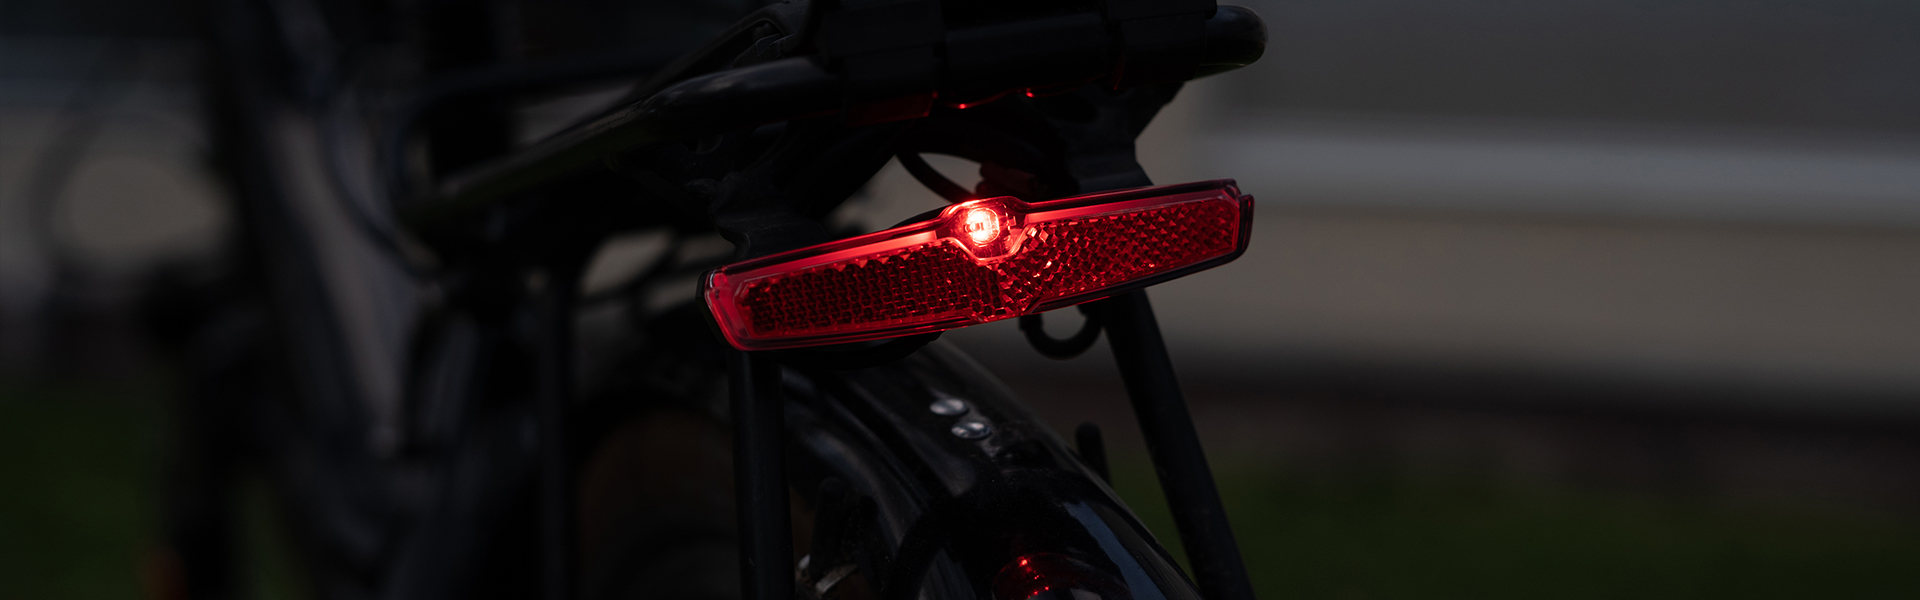 LF-04 Sate-lite USB rechargeable bike front light/ bicycle headlight LF-04